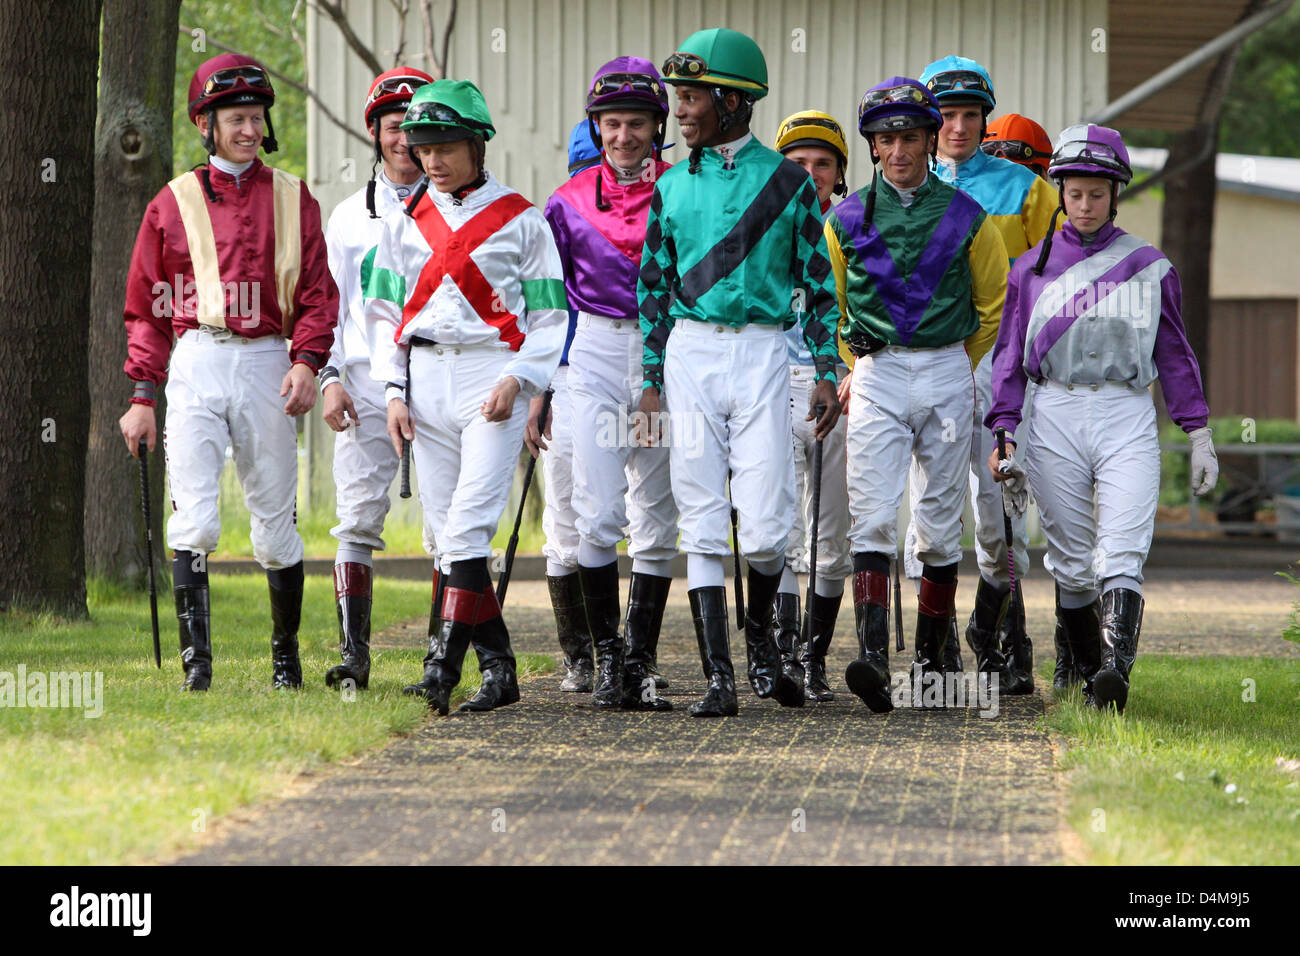 Jockeys In Deutschland